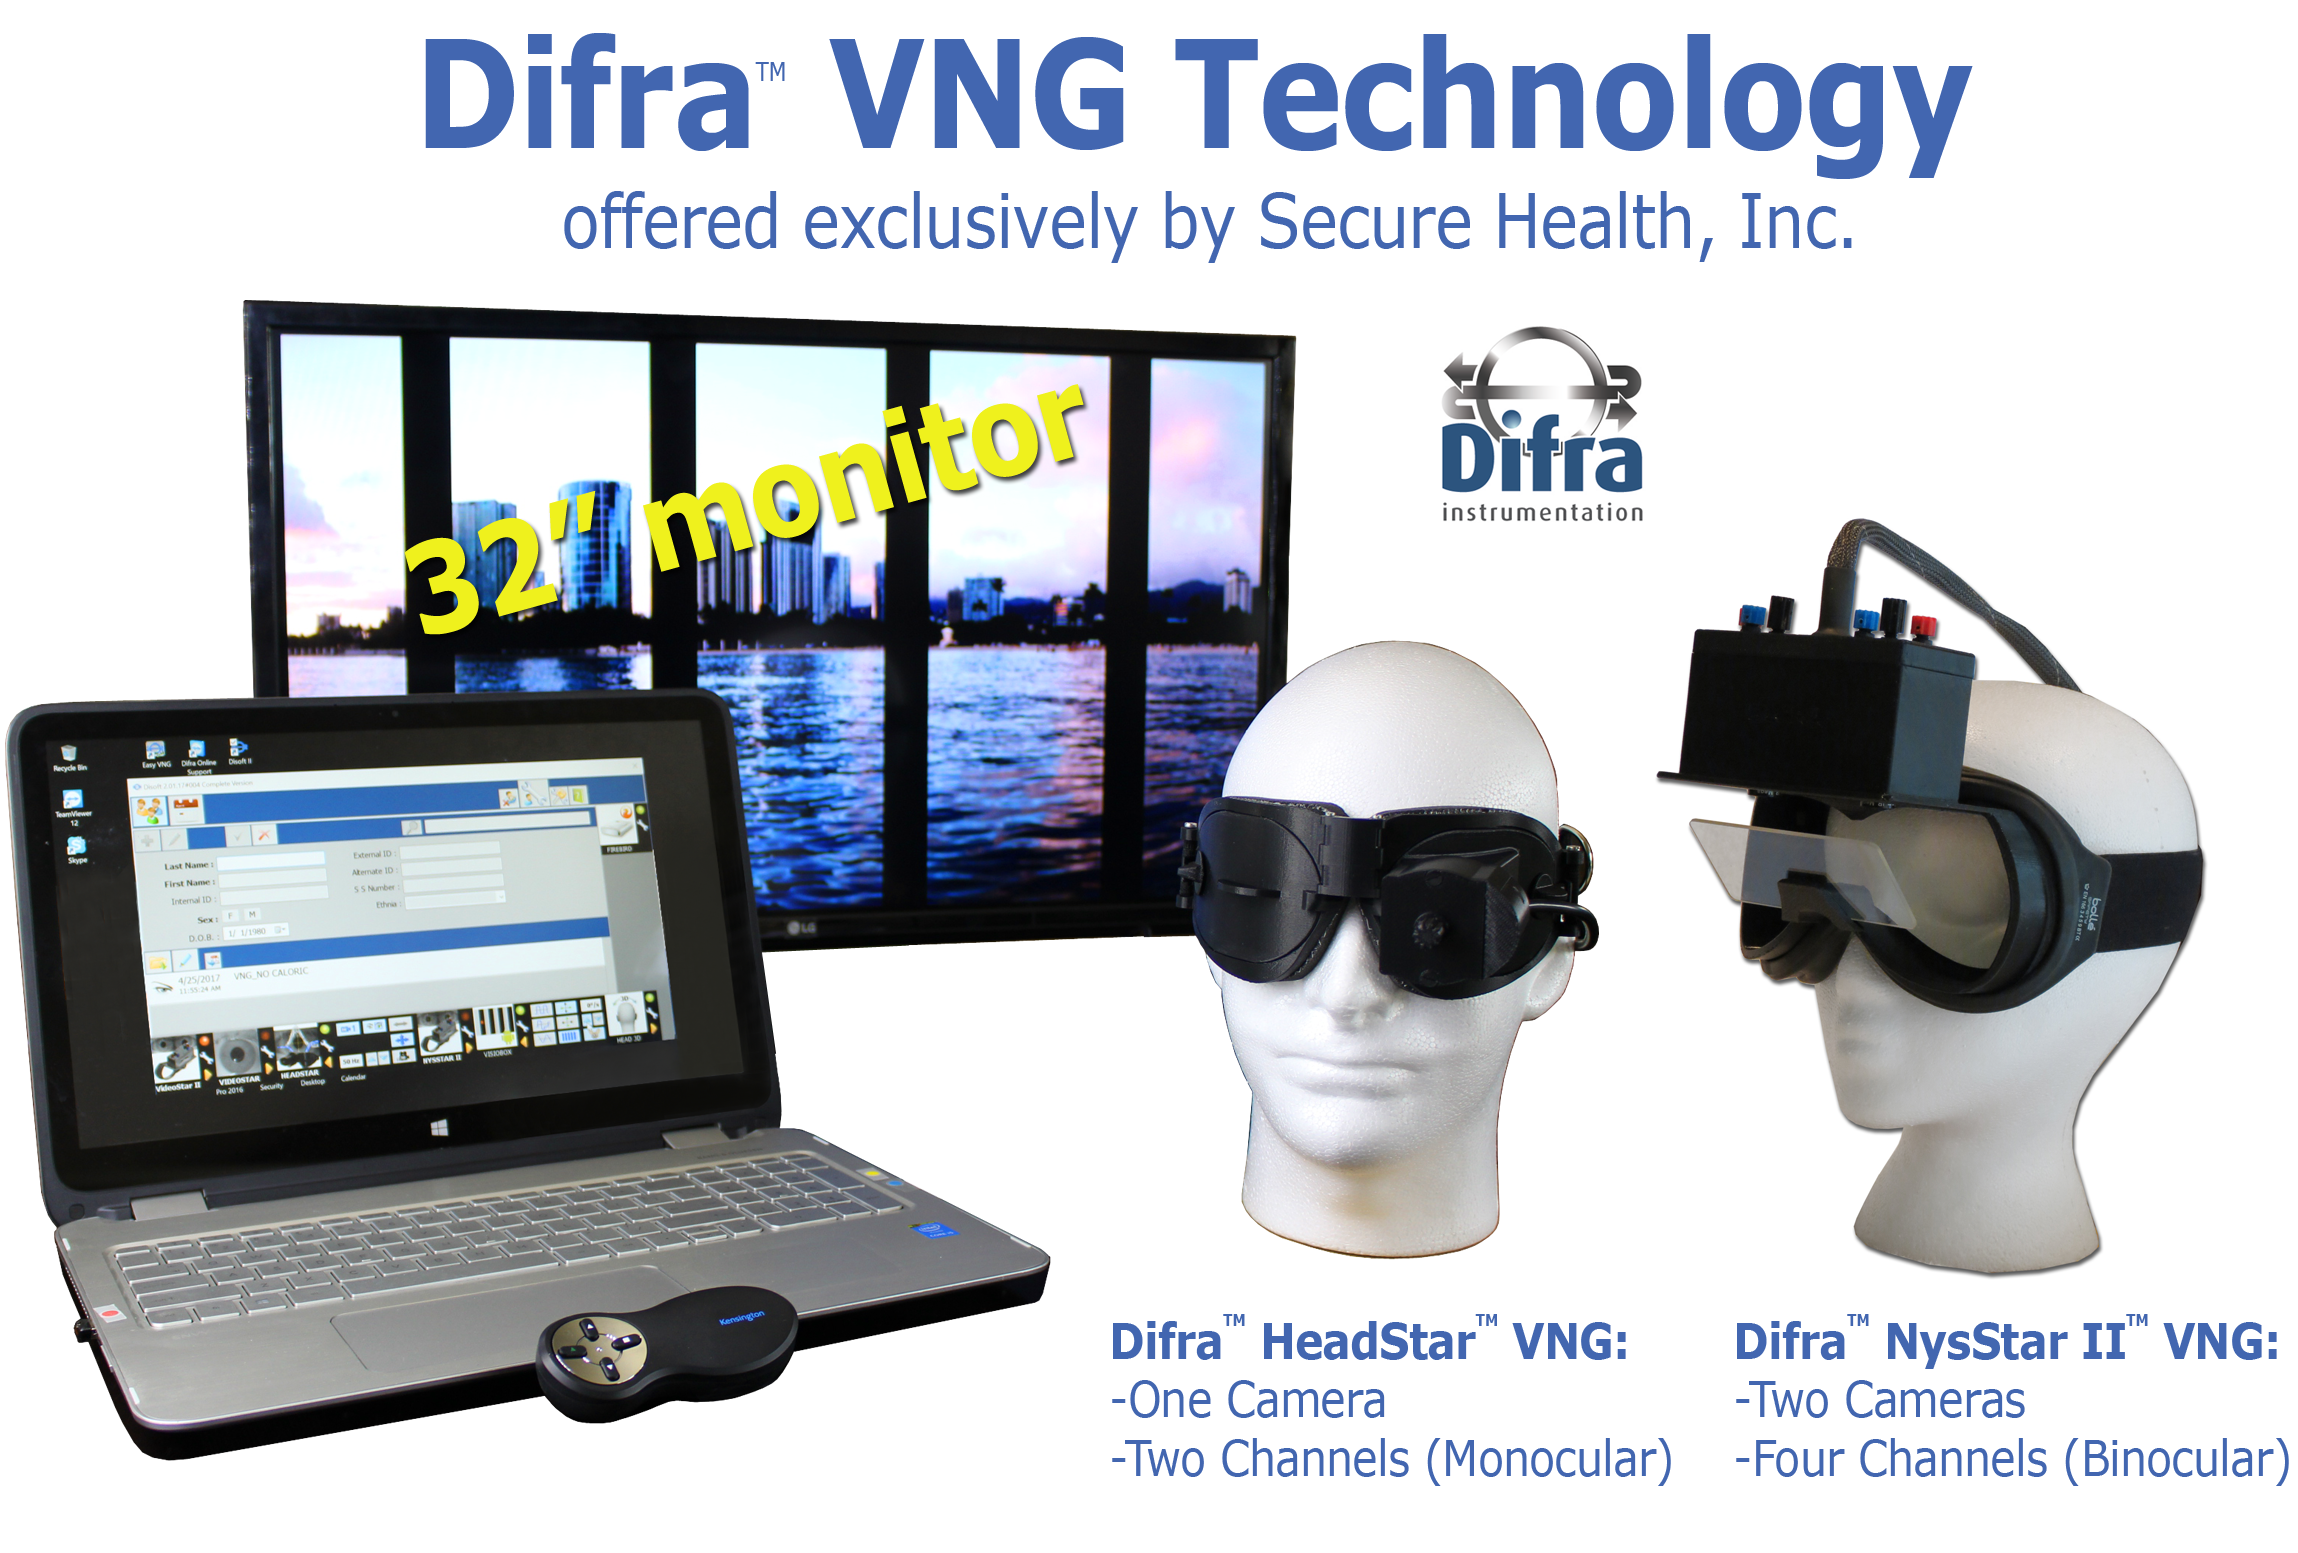 premium new vng equipment, Difra, VNG equipment, technology, monocular, binocular, videonystagmography systems